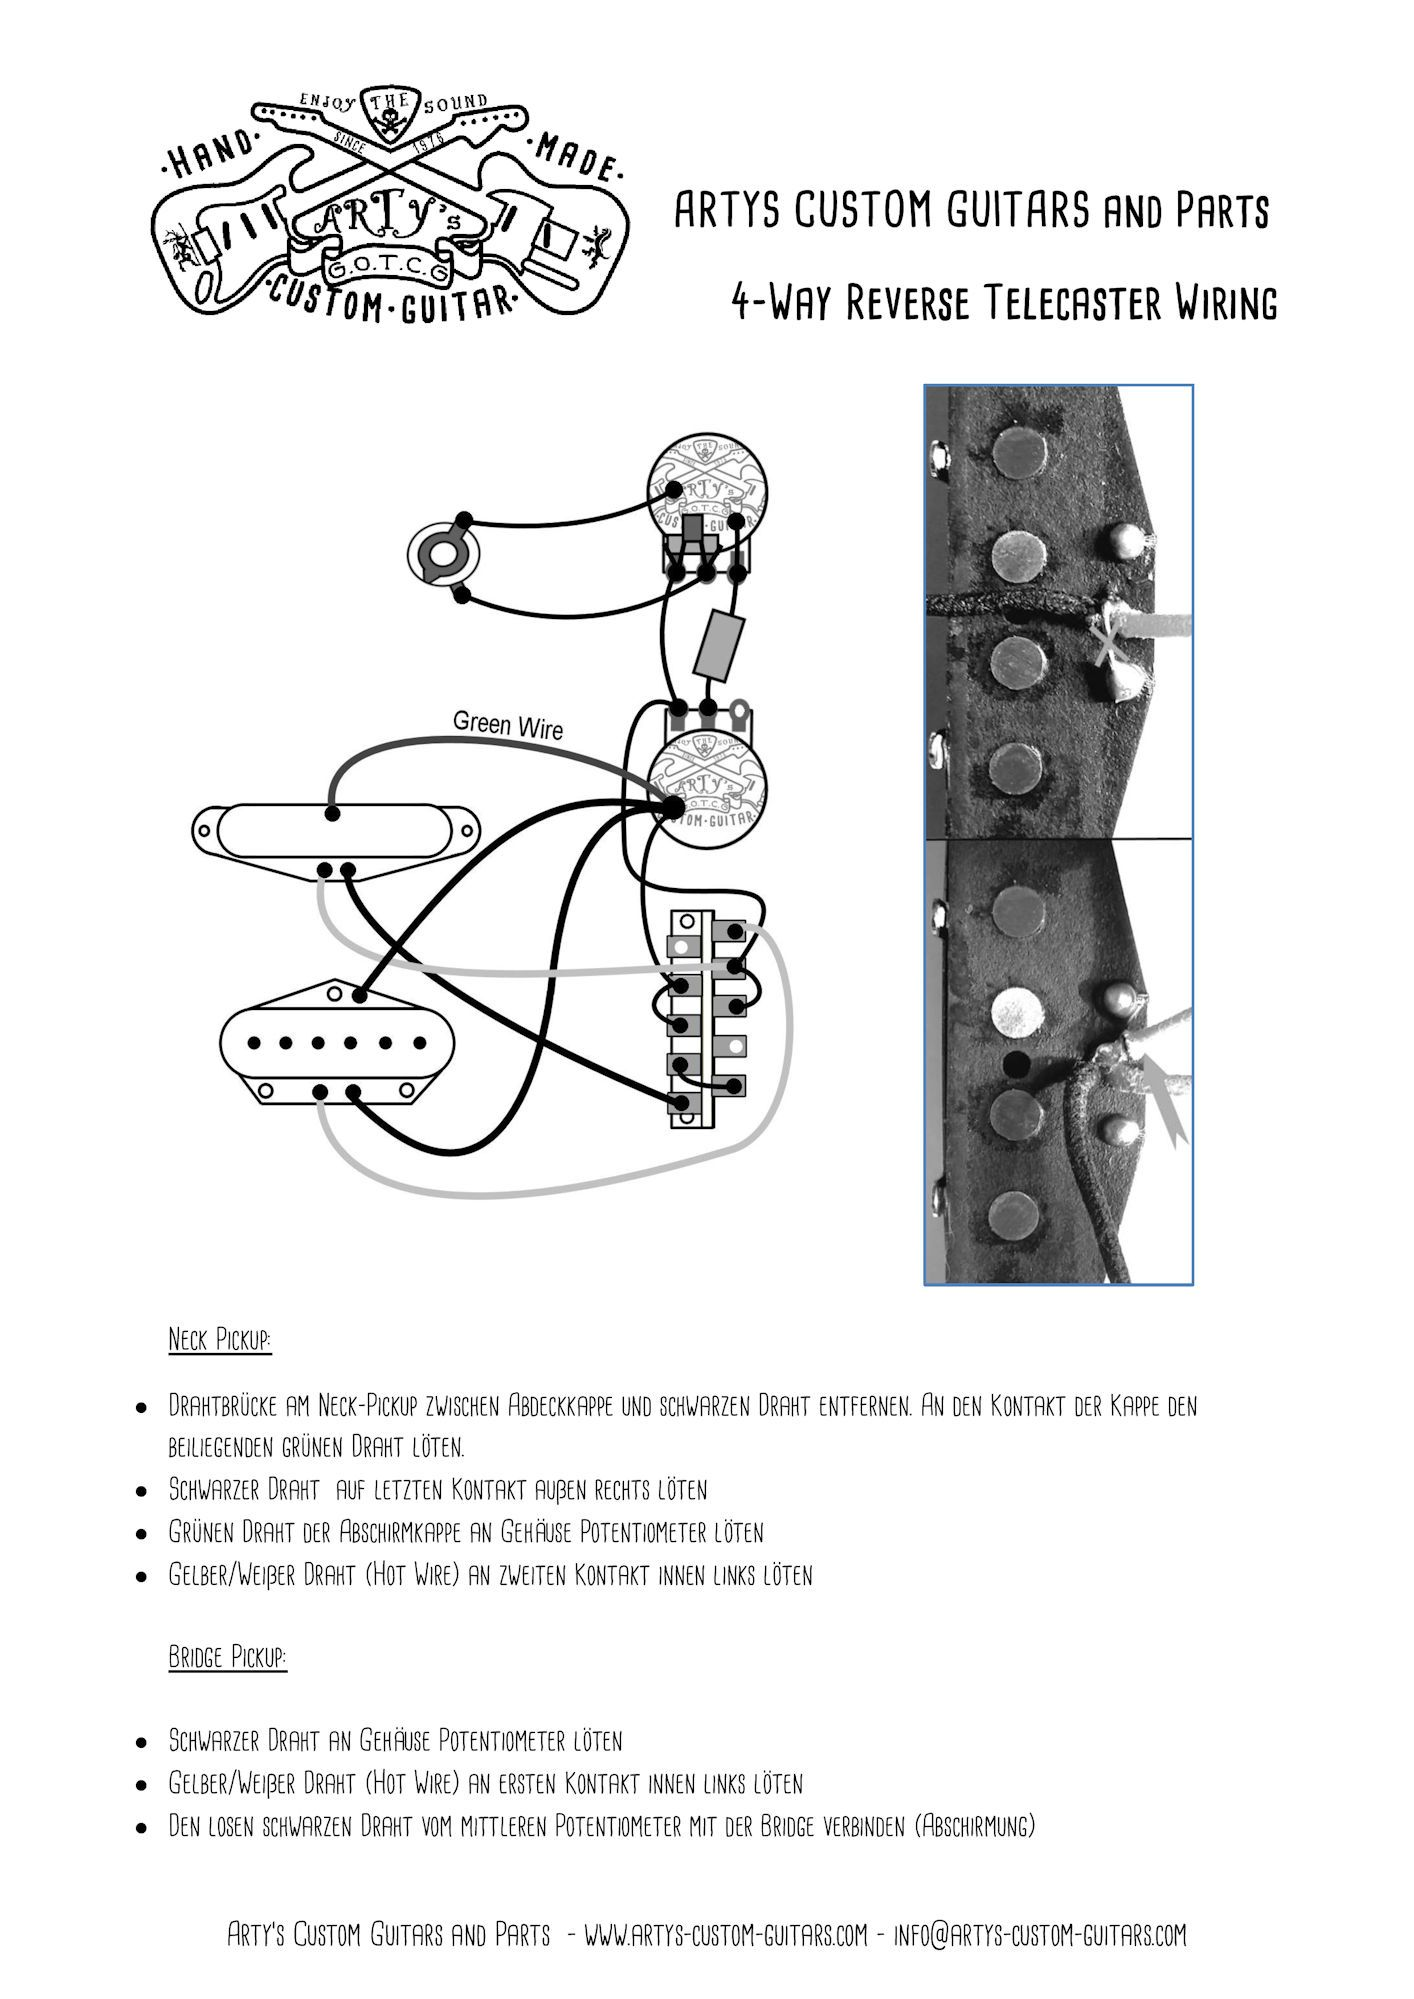 497c7bfde440da0c731b70fa3253046a arty's custom guitars wiring diagram 4 way reverse control plate telecaster custom wiring diagram at mifinder.co